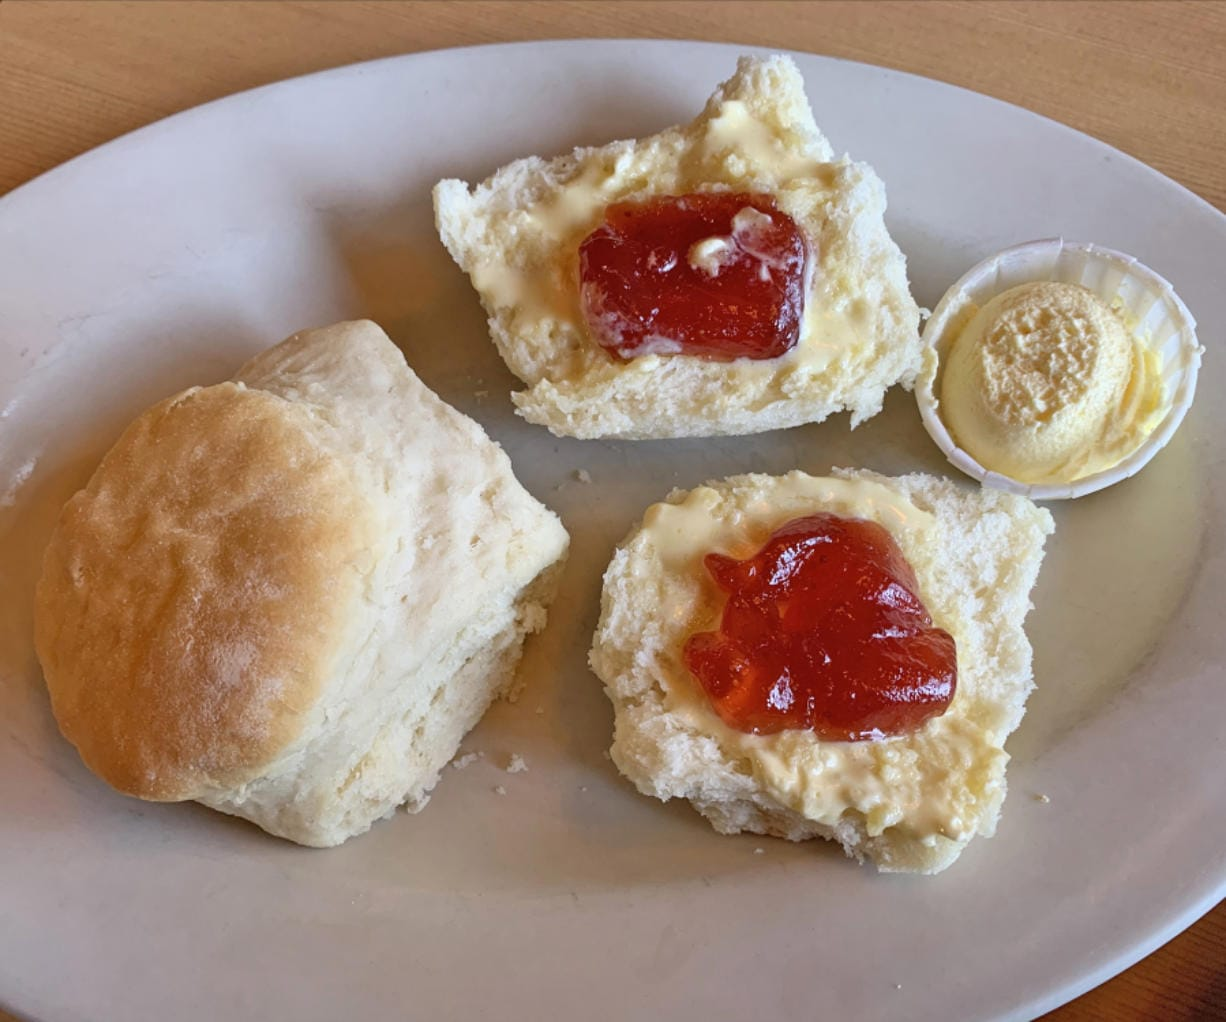 Side order of biscuits at Hockinson Cafe. (Photos by Rick Browne for The Columbian)